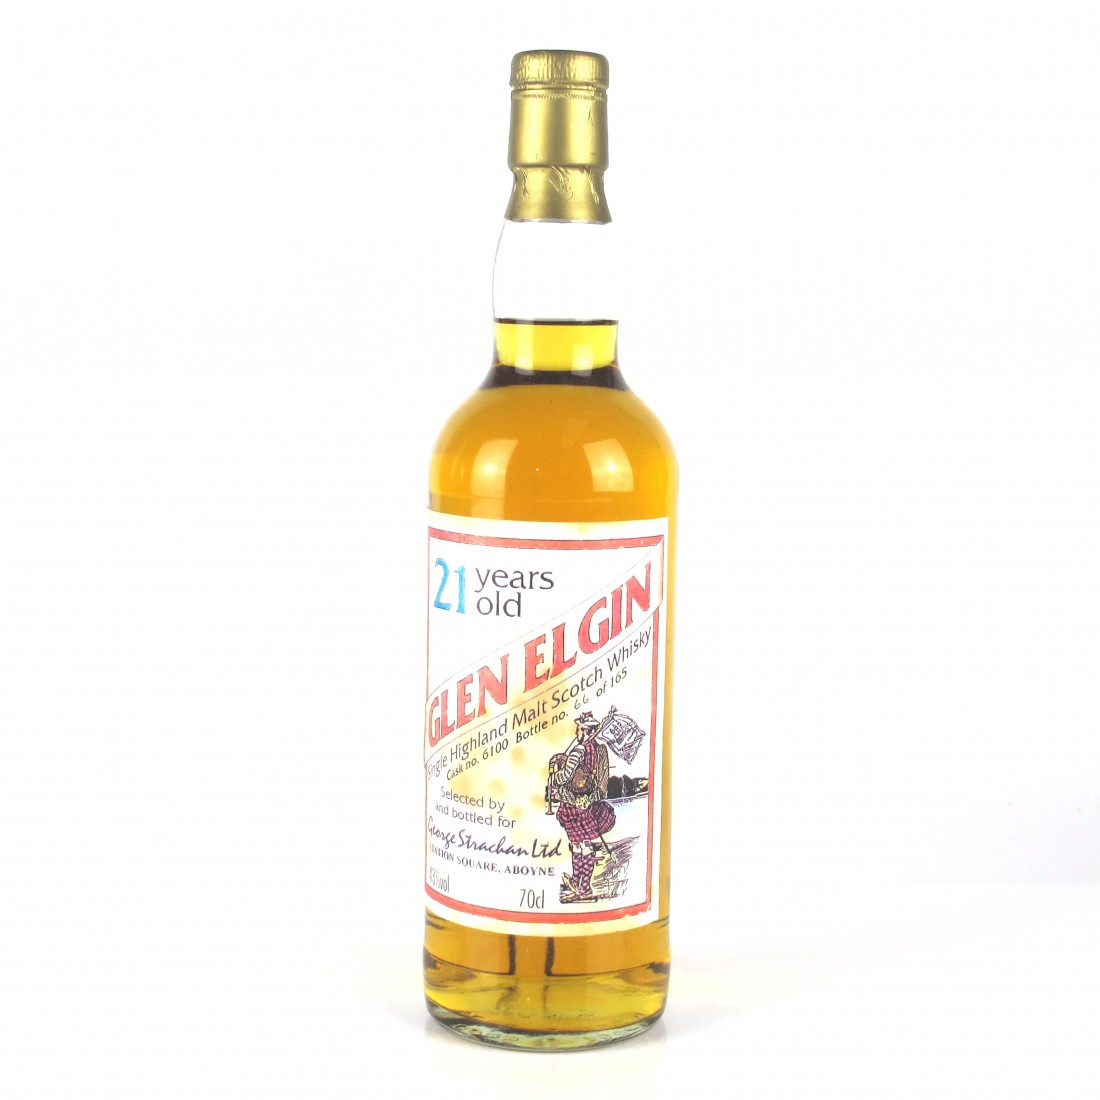 Glen Elgin 21 Year Old Single Cask